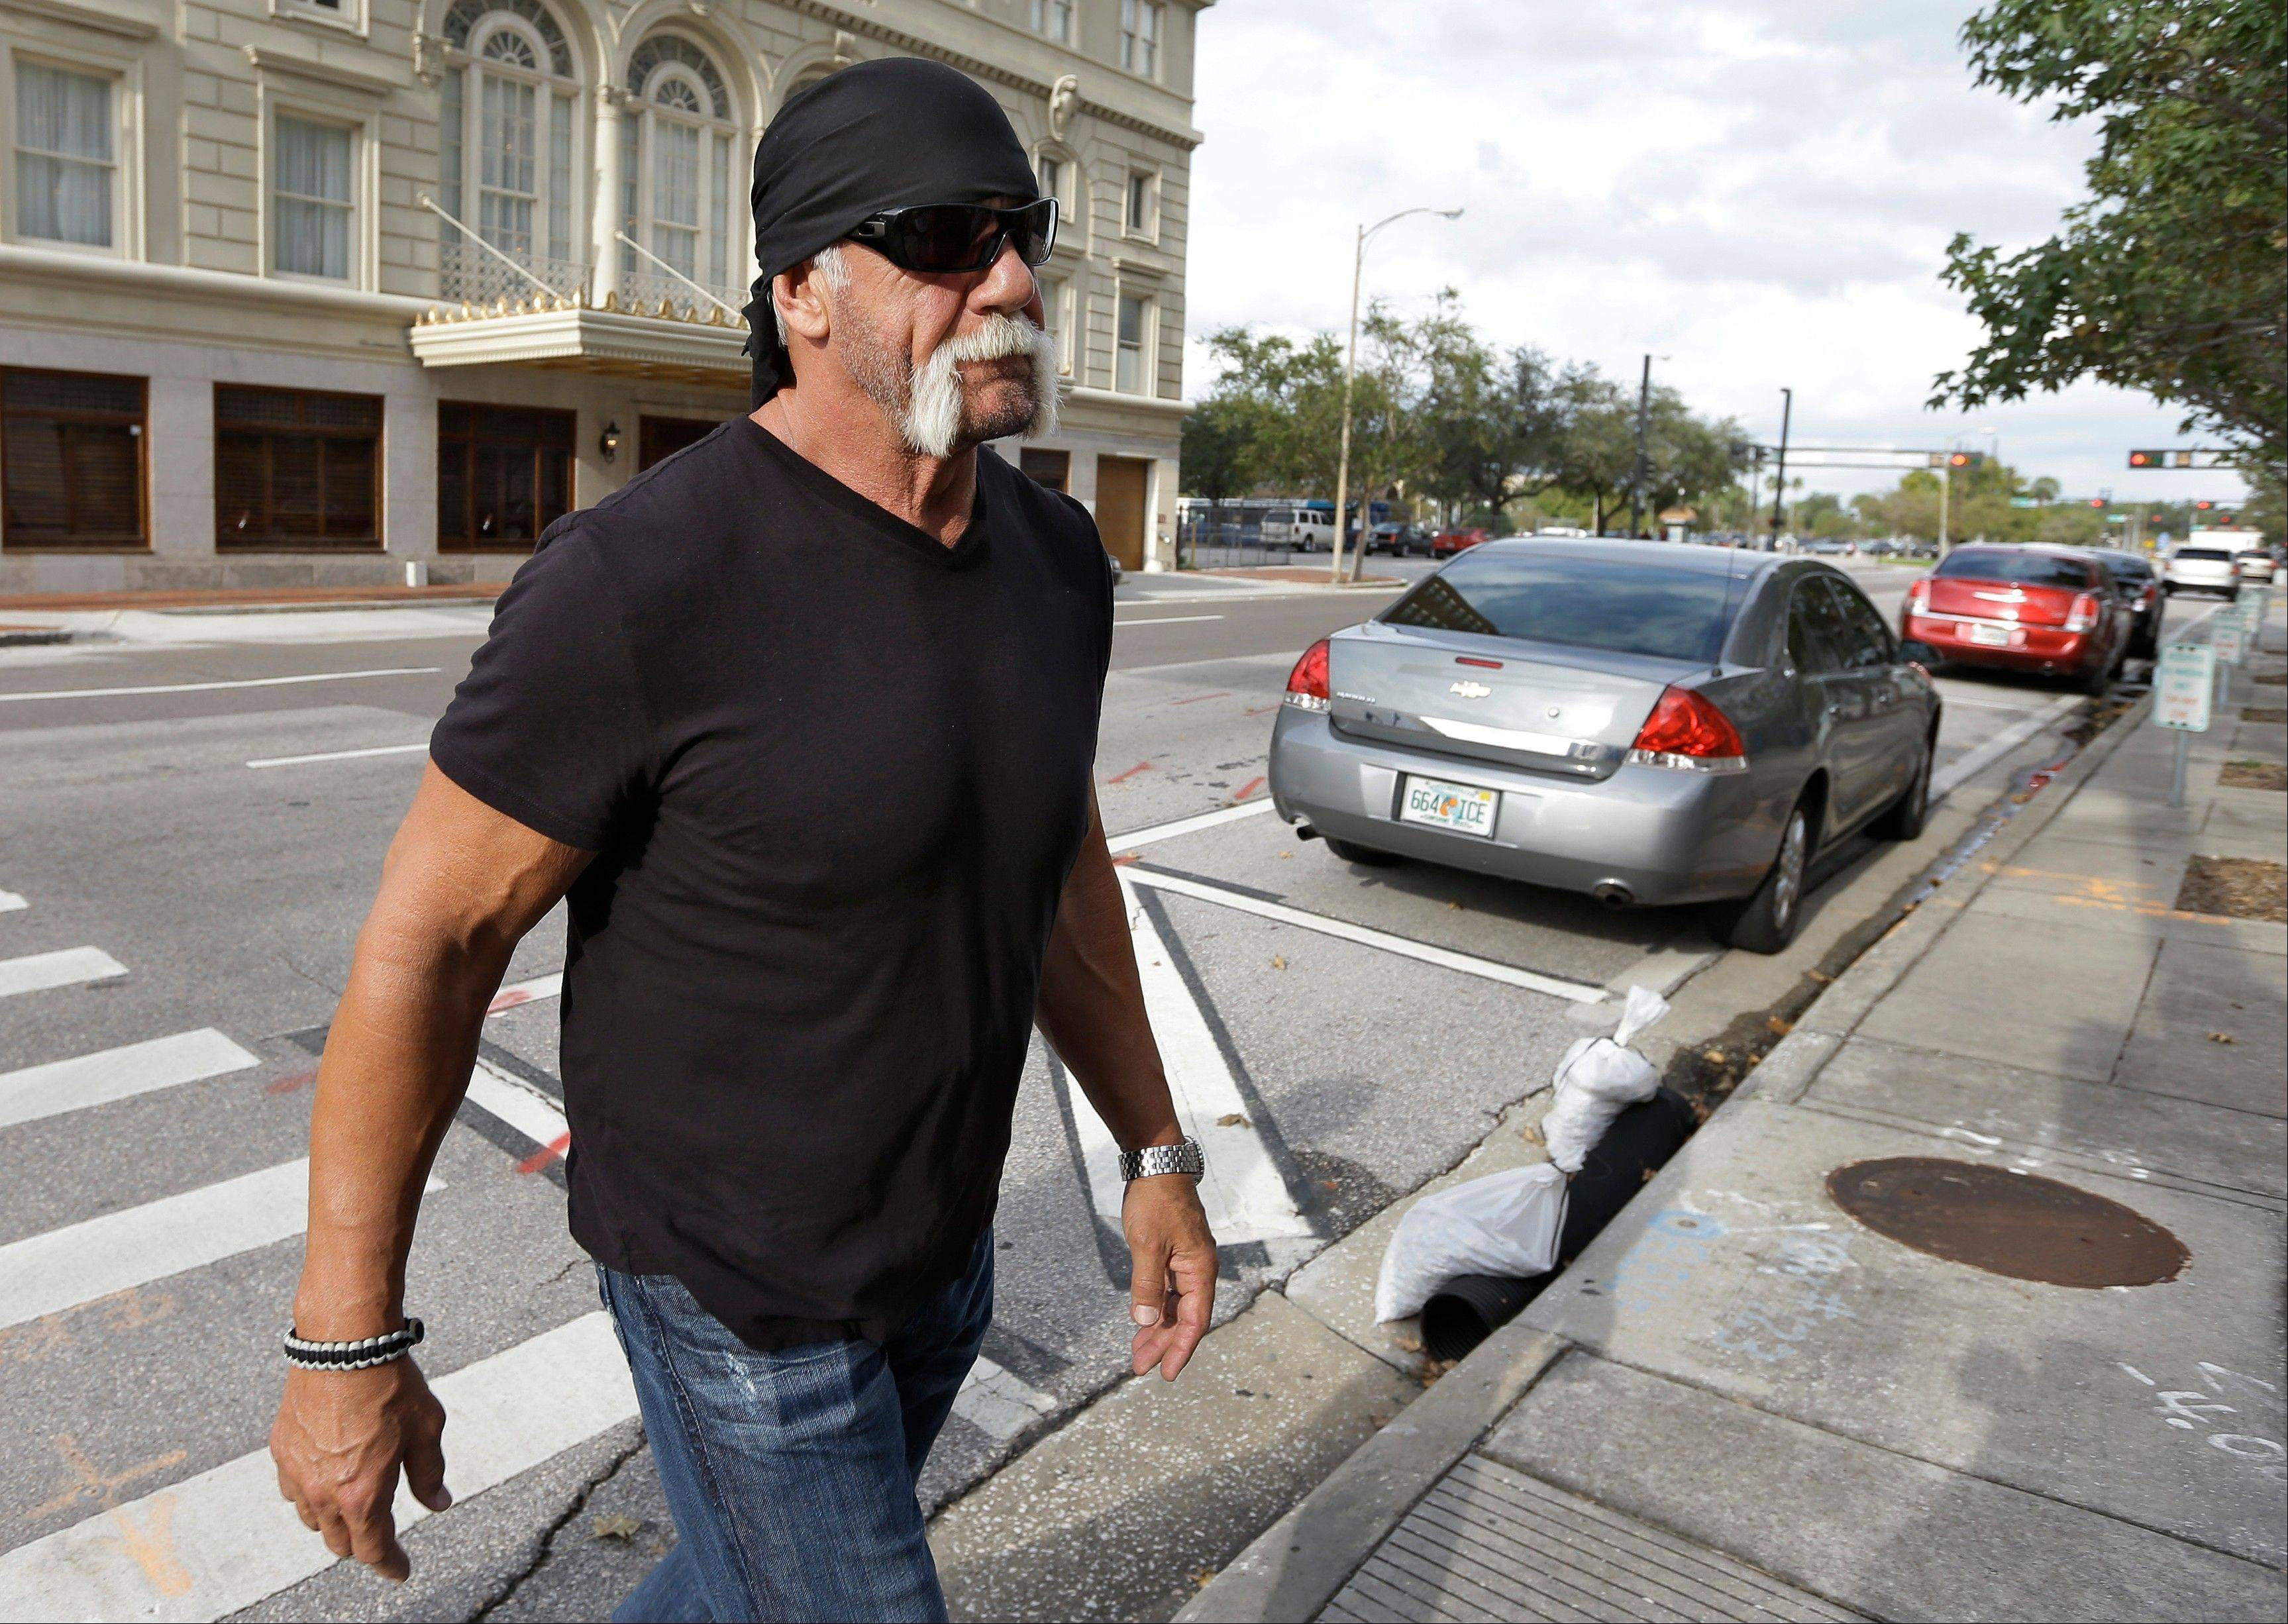 Reality TV star and former pro wrestler Hulk Hogan, whose real name is Terry Bollea, arrives at the U.S. Courthouse for a news conference Monday in Tampa, Fla. Hogan says he was secretly taped six years ago having sex with the ex-wife of a friend. Portions of the video were posted on the online gossip site Gawker.